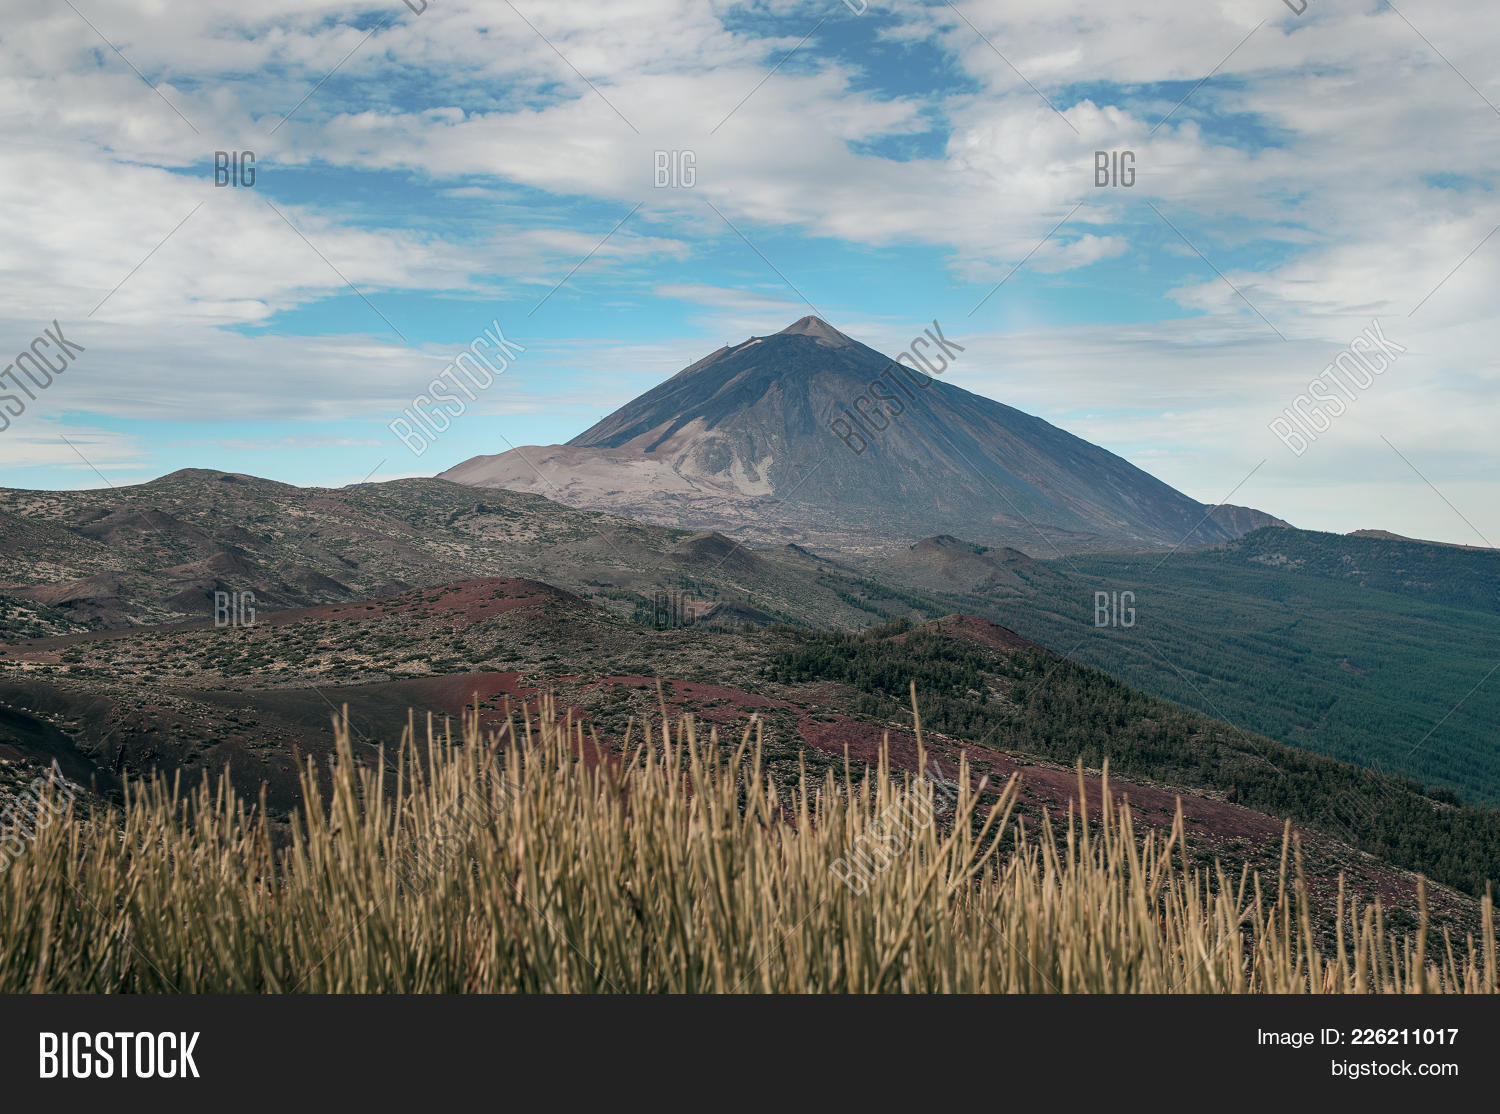 Volcano el teide powerpoint template volcano el teide powerpoint destination powerpoint template 60 slides toneelgroepblik Image collections